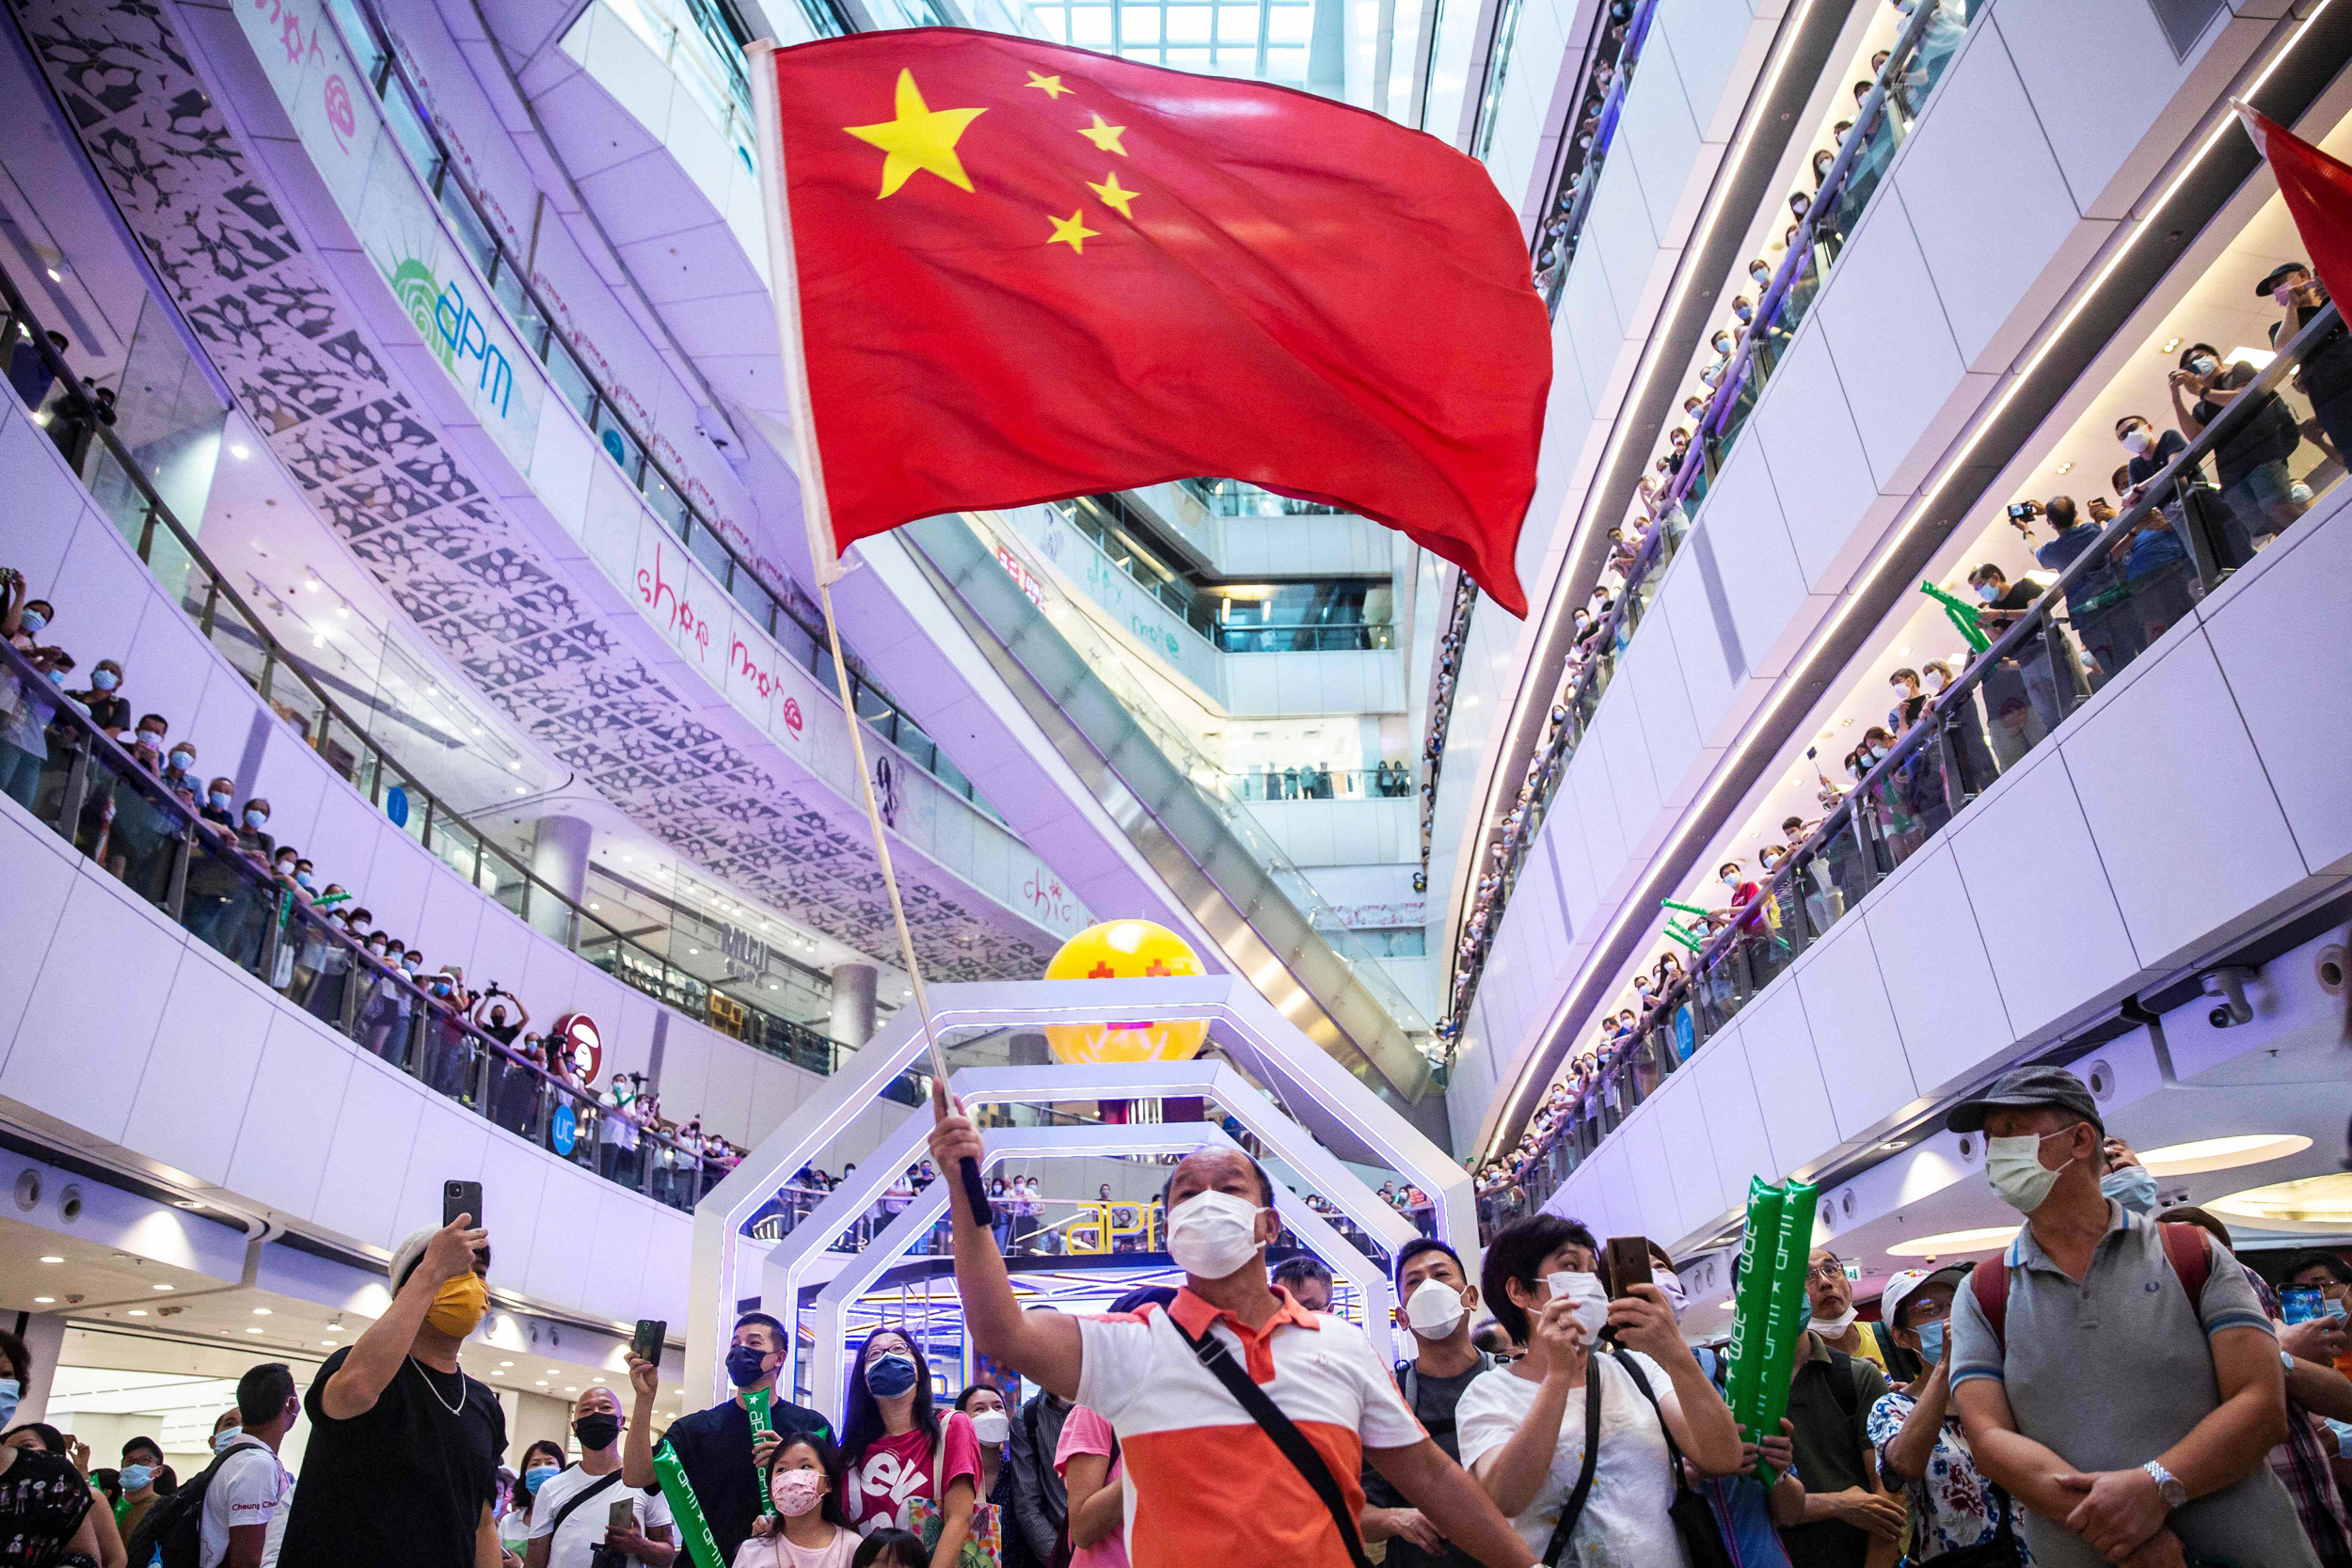 Hong Kong investigates China anthem booing during Olympics broadcast in mall